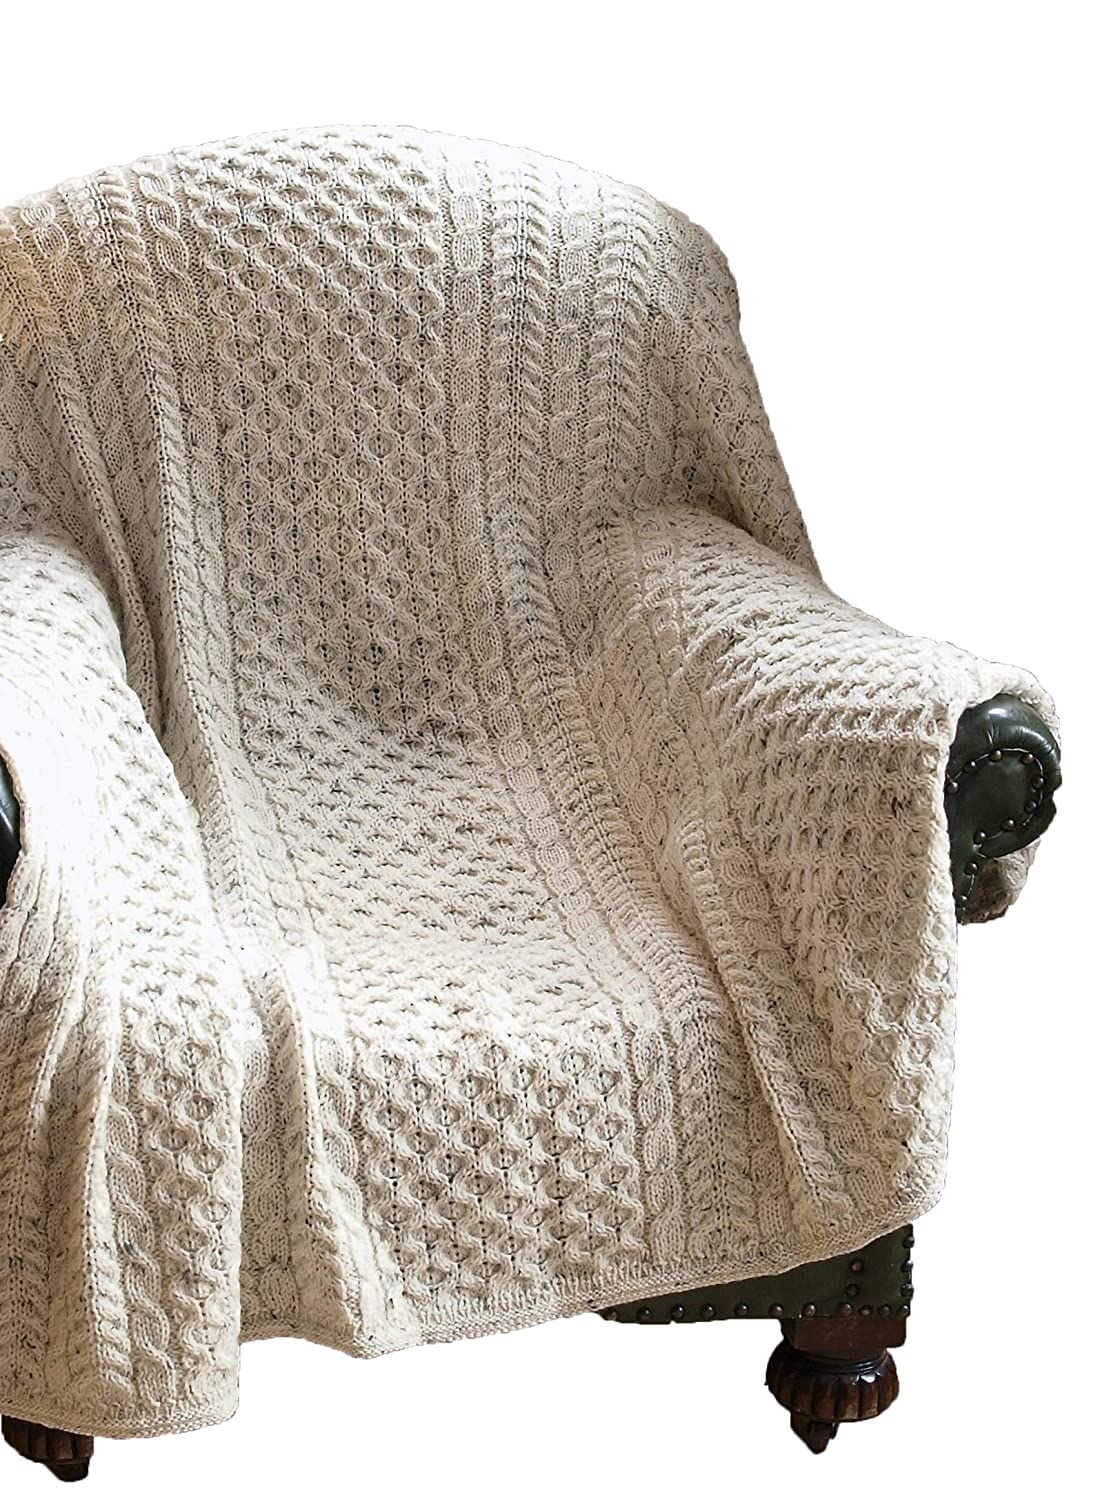 Image of Crafts Aran Crafts Traditional Honeycomb Throw Blanket 50'x60' (100% Pure New Wool)